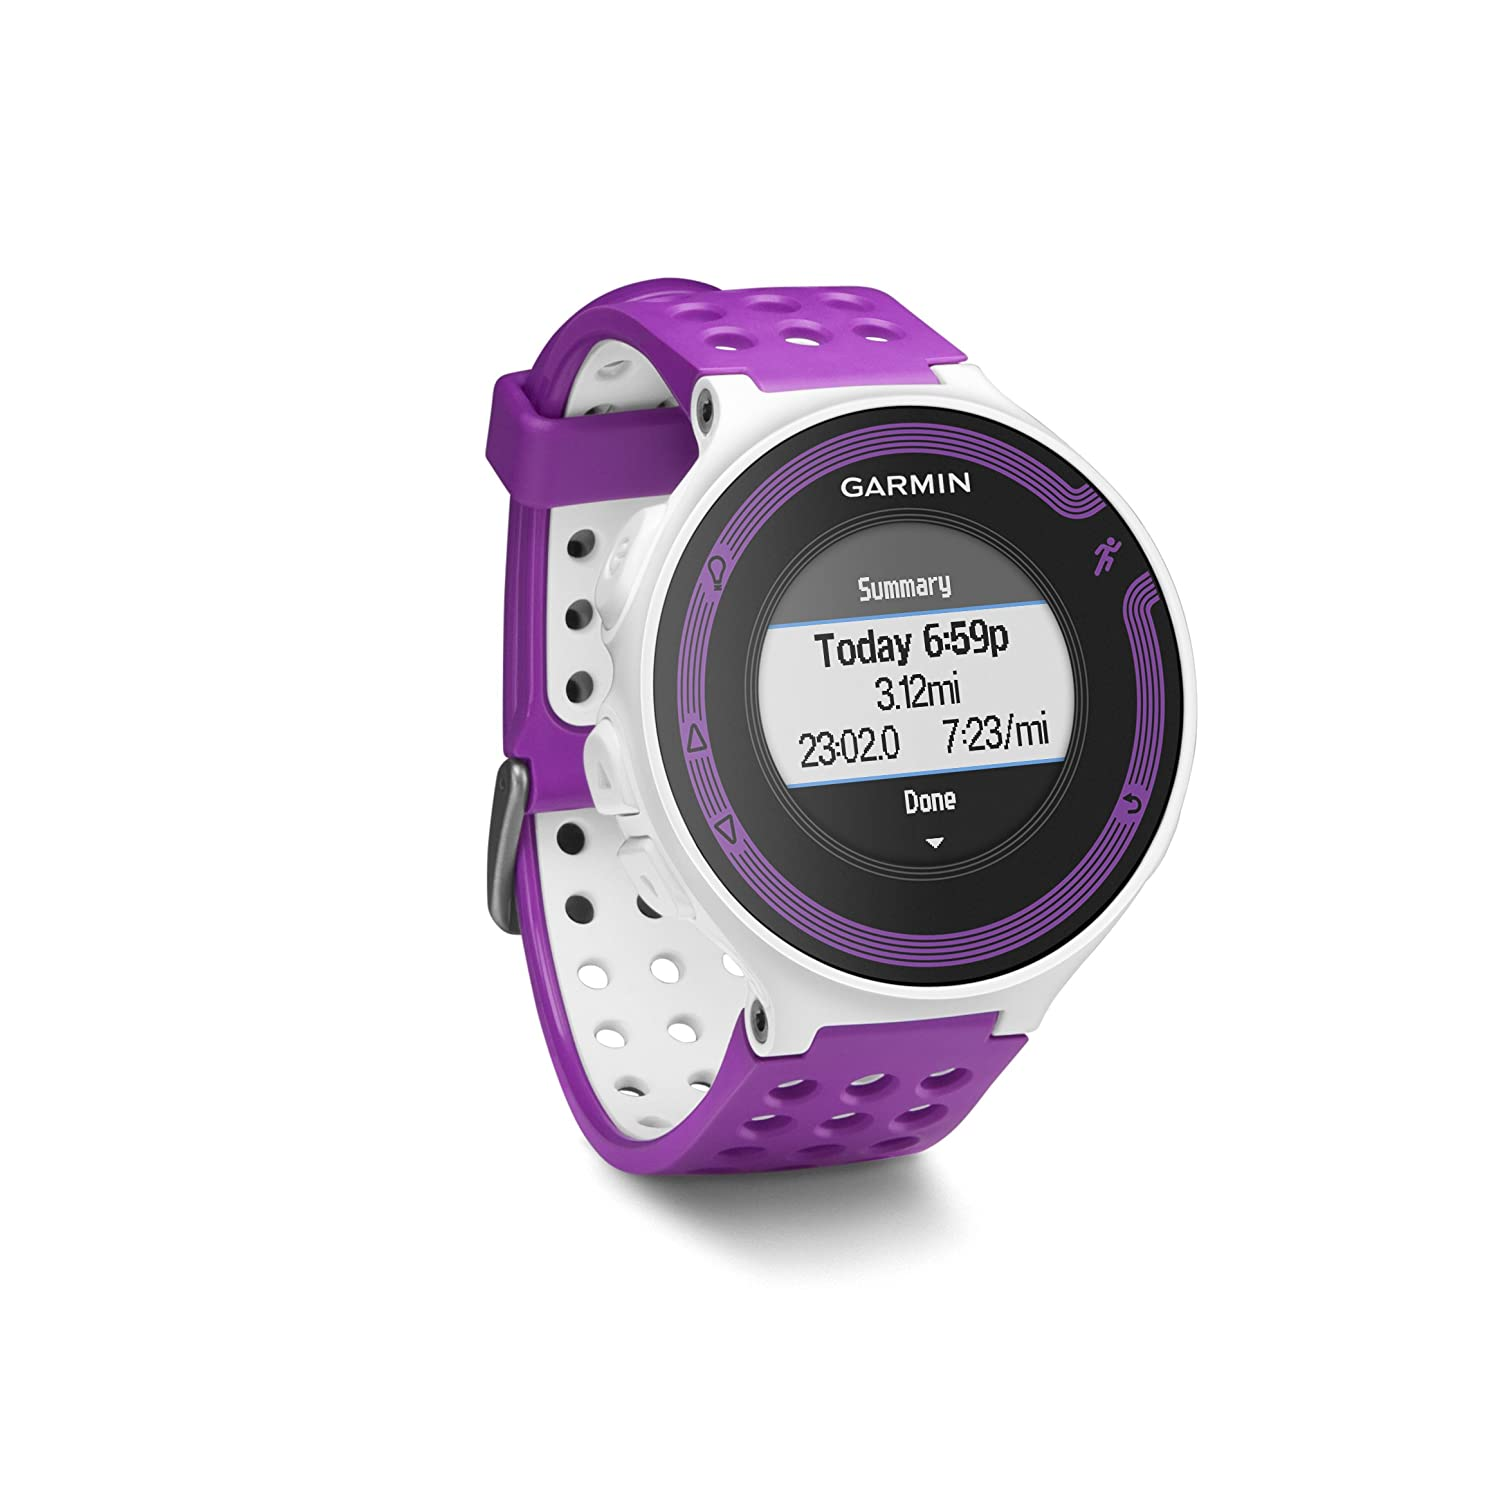 Garmin Tracking System >> 6 Best Running Watches for Women 2018 | Running Gear Lab